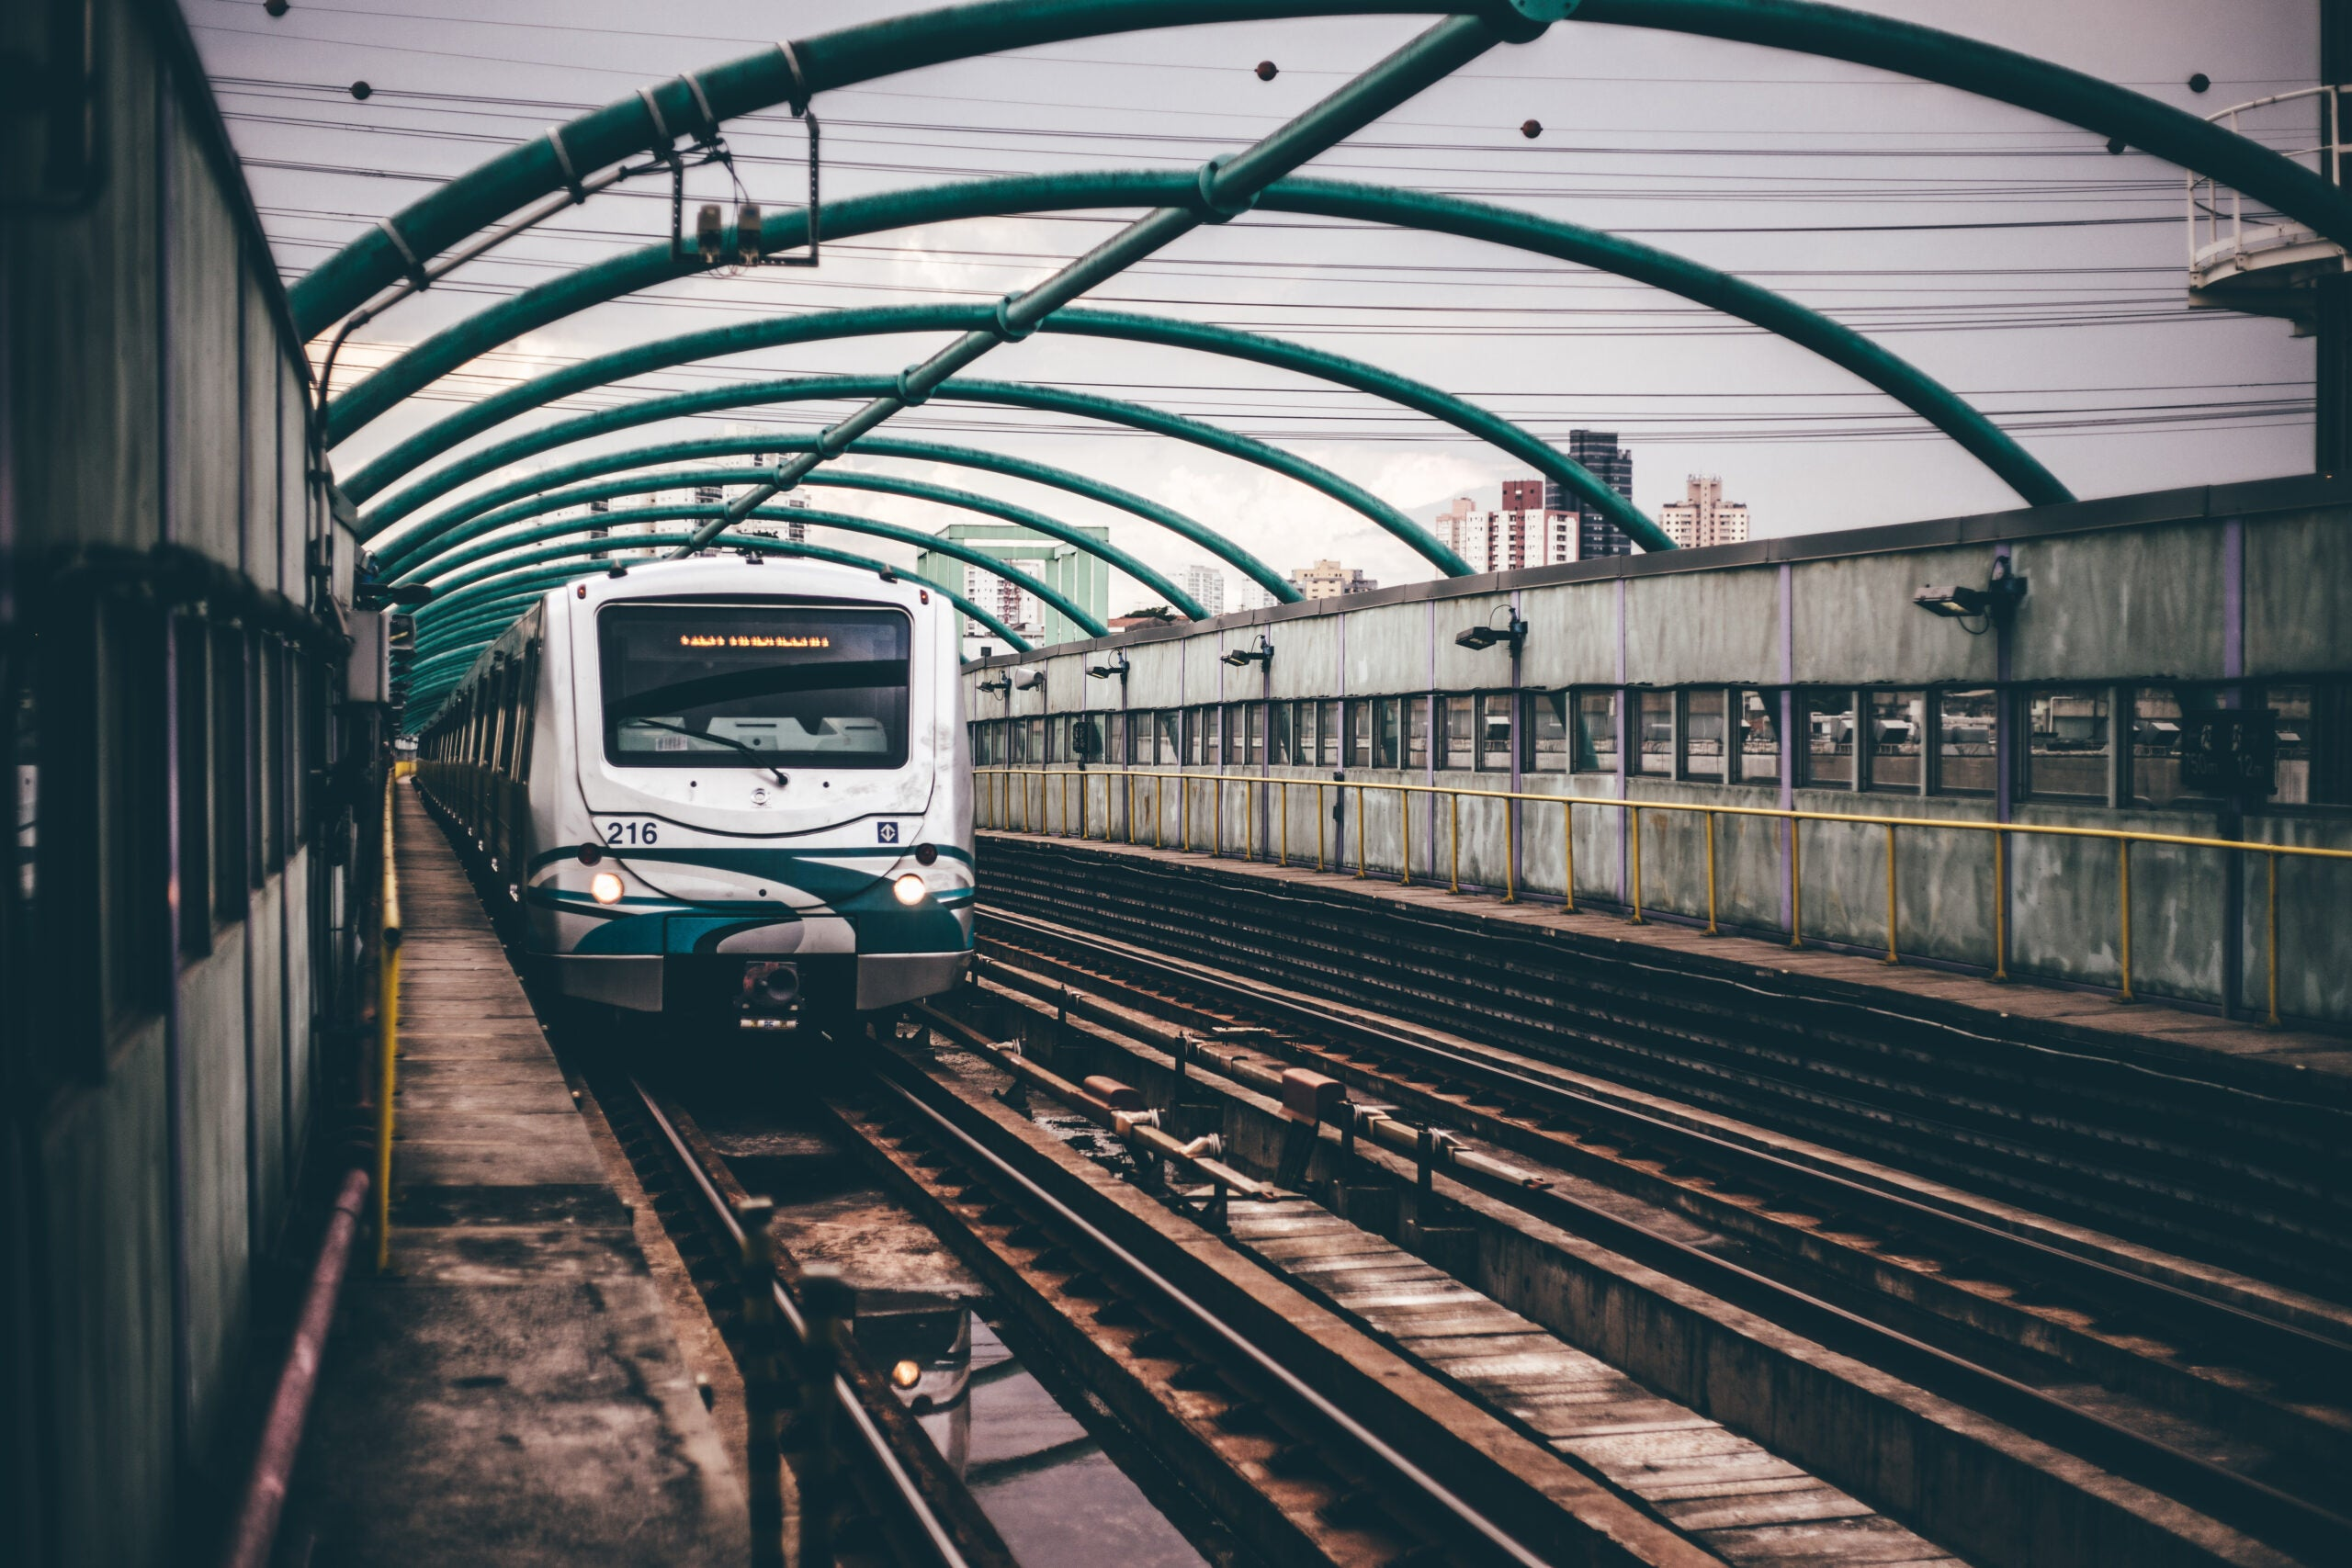 All the ways we could make trains safer and smarter